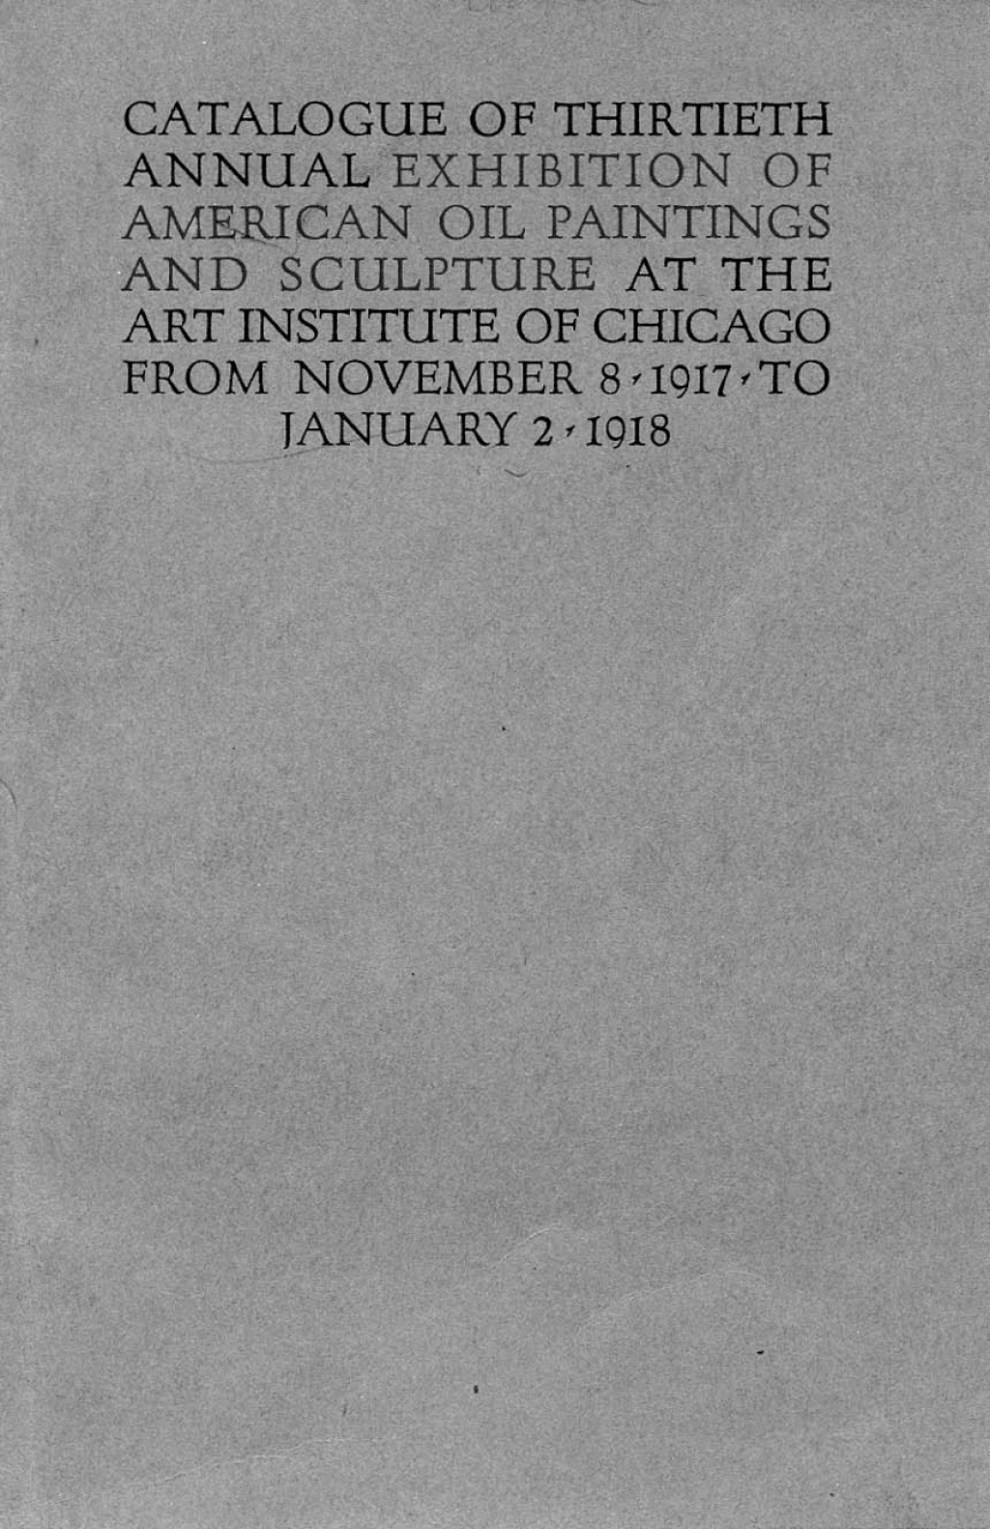 "1918 The Art Institute of Chicago, Chicago, IL, ""Thirtieth Annual Exhibition of American Oil Paintings and Sculpture"", November 8, 1917 - January 2, 1918"